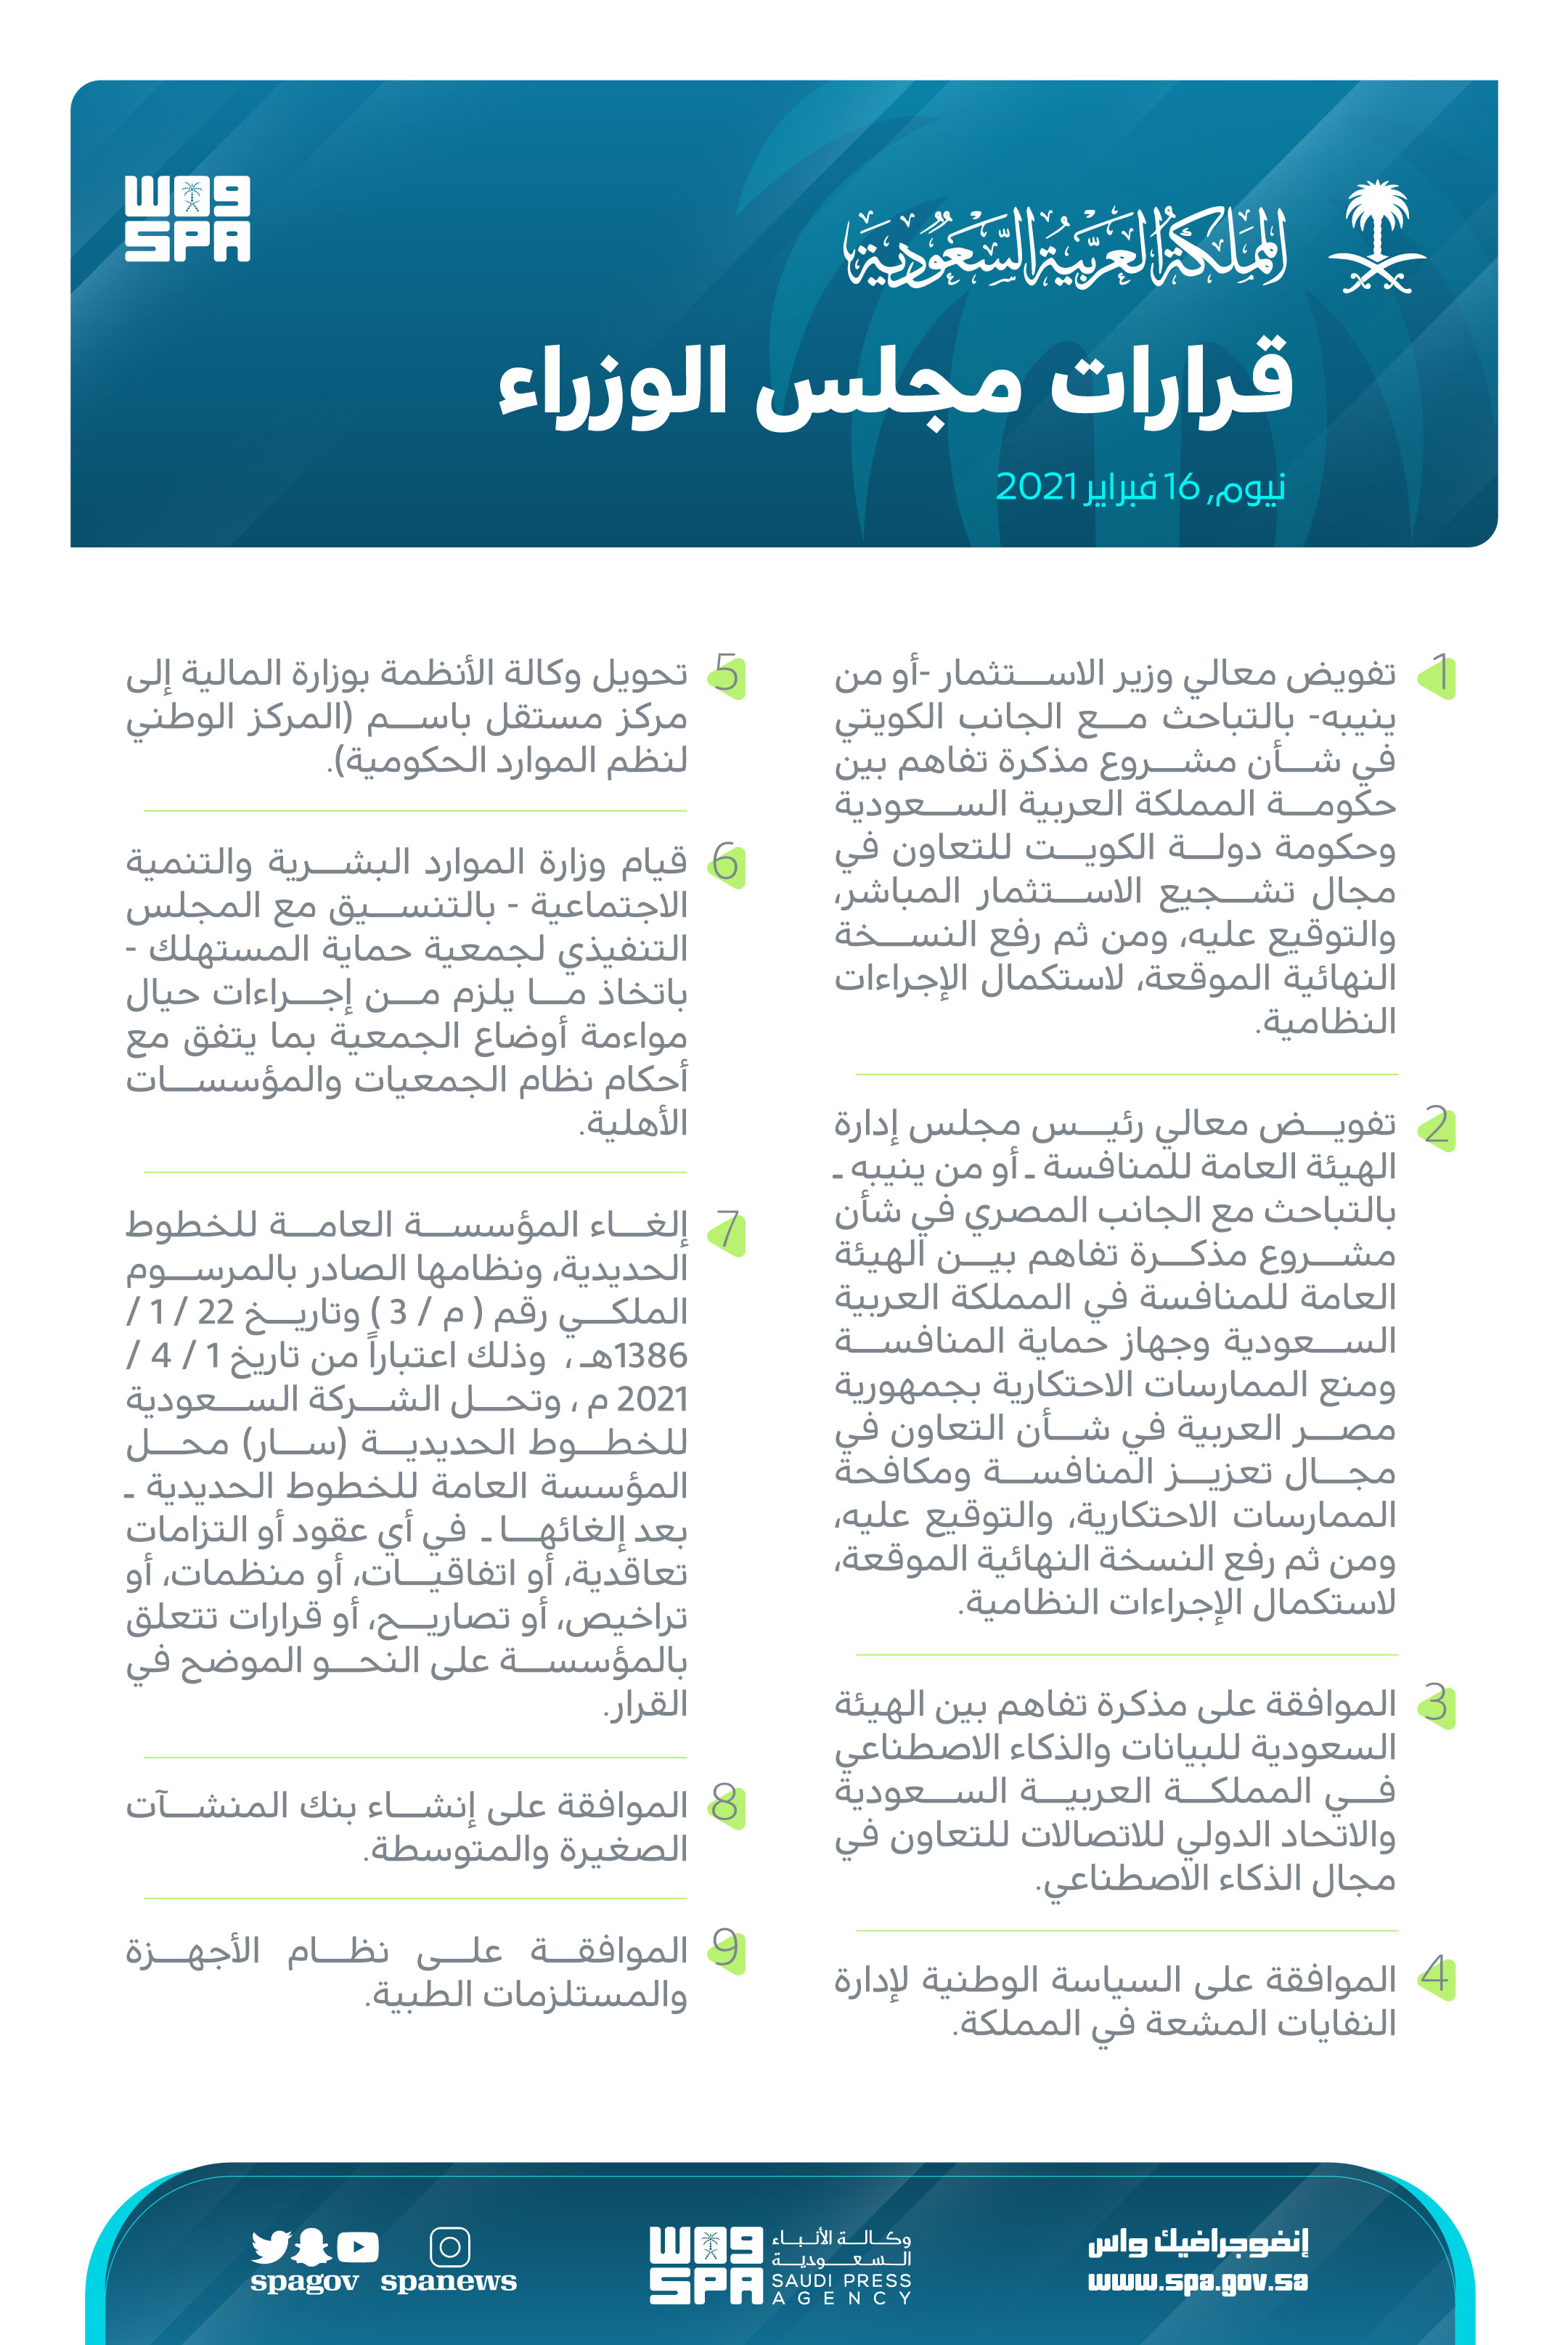 9 approvals by King Salman regarding Railways, SME banks, HR, and more